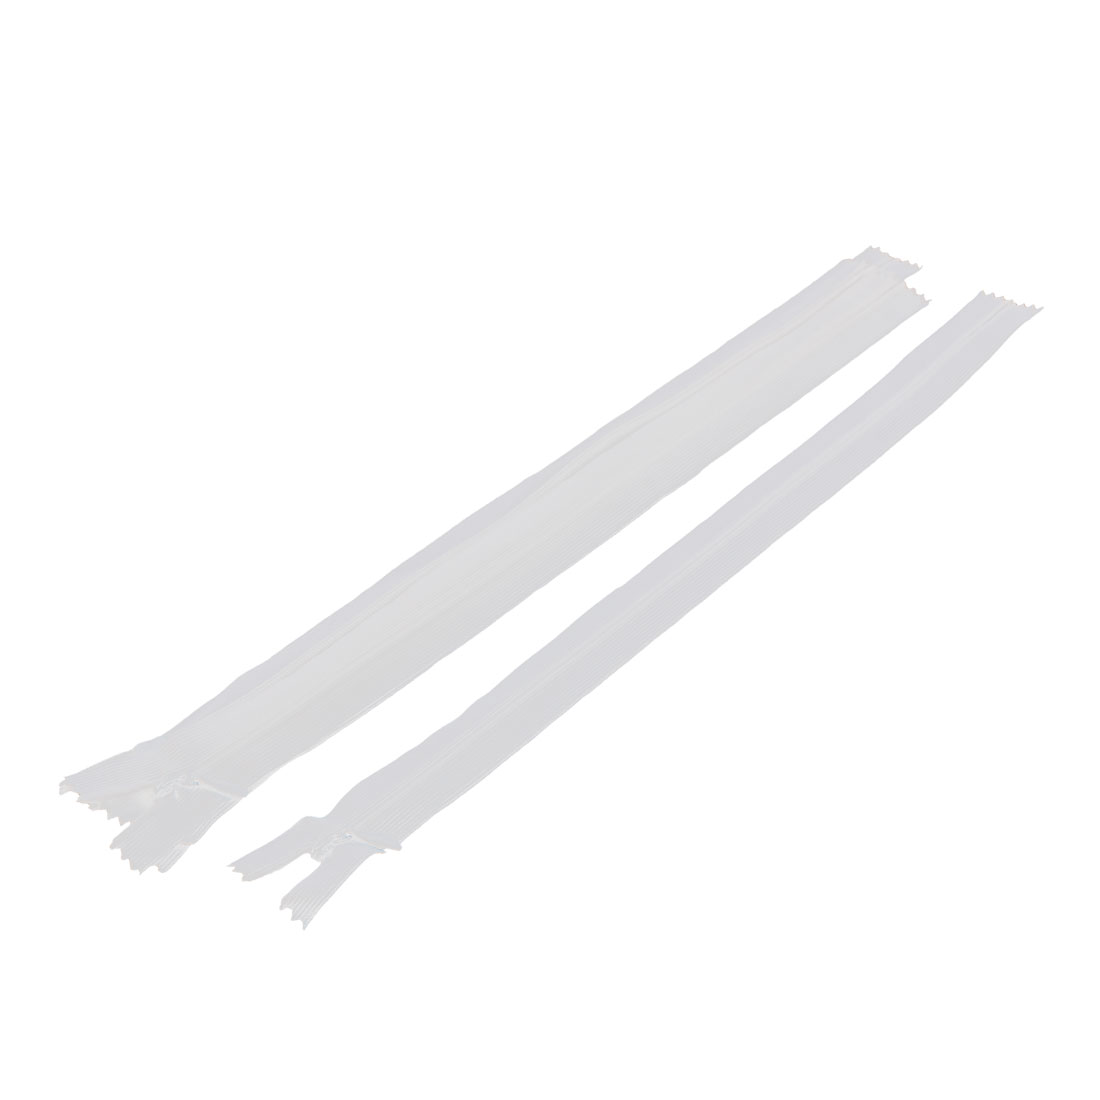 5 Pcs 12-inch Long White Nylon Zippers Zips for Clothes